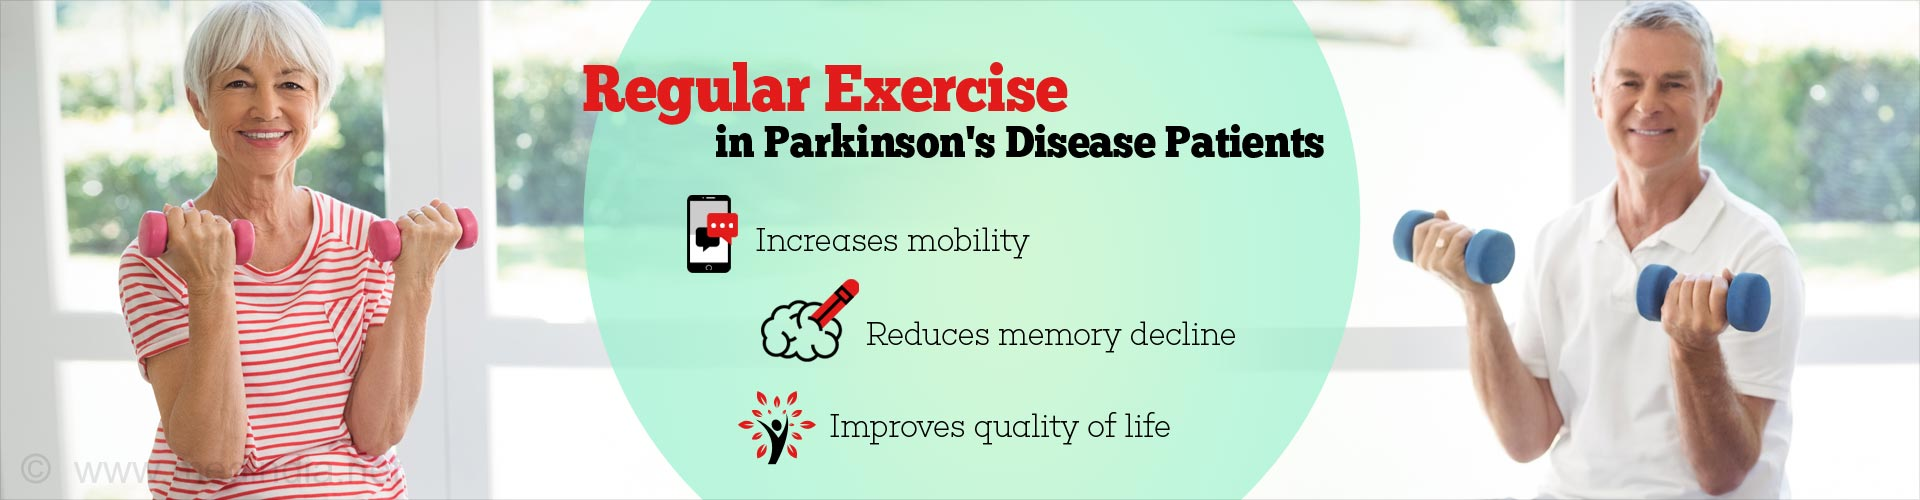 Daily Work Out Improves Quality of Life in Parkinson''s Disease Patients